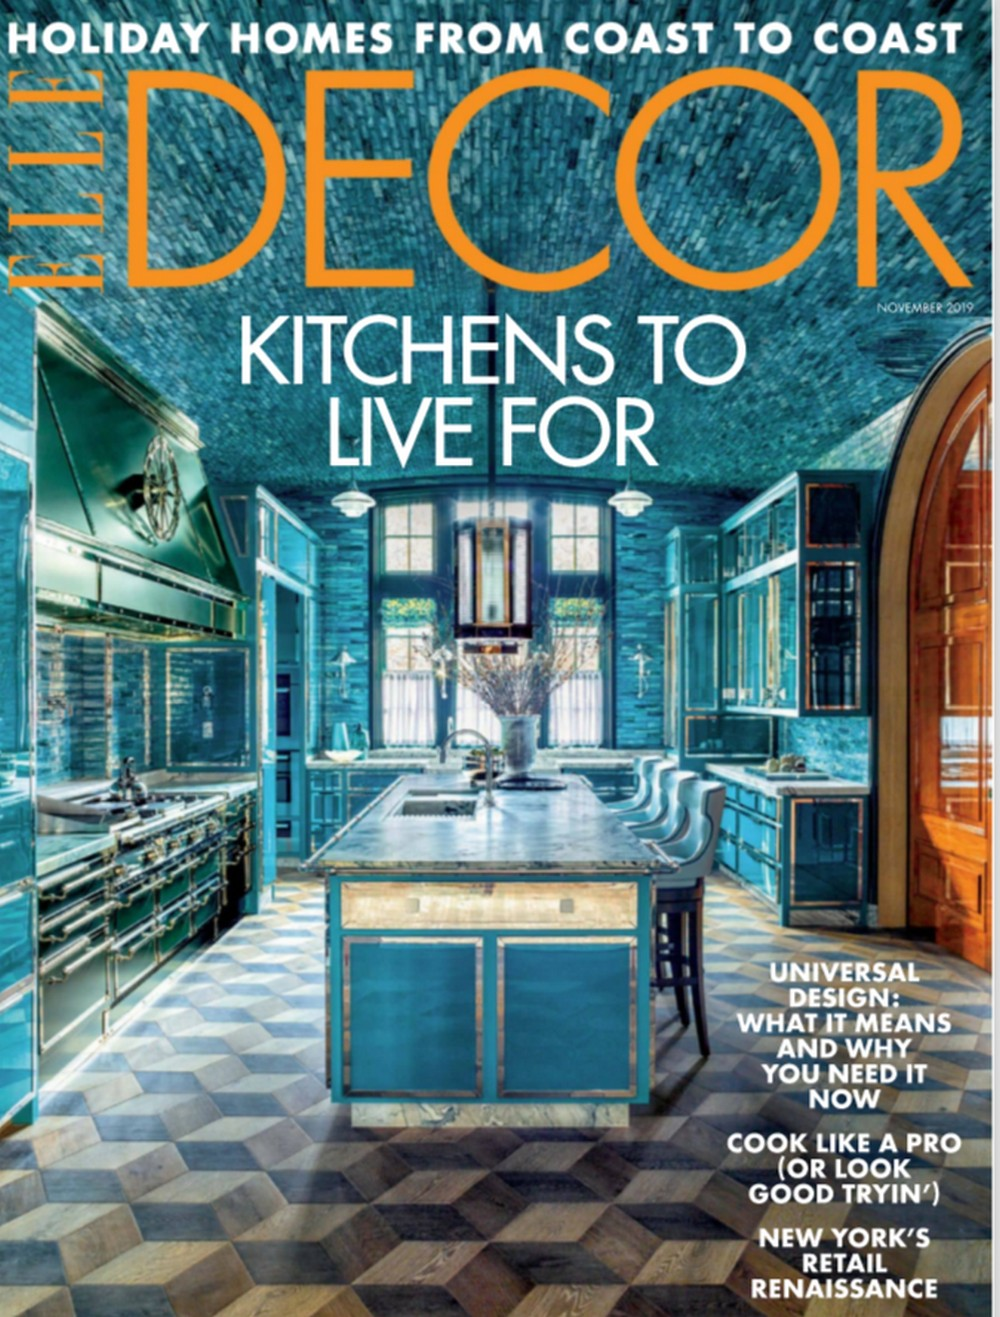 Top 7 Interior Design Magazines You Should Buy In November! interior design magazines Top 7 Interior Design Magazines You Should  Buy In November! Top 7 Interior Design Magazines You Should Buy In November 4